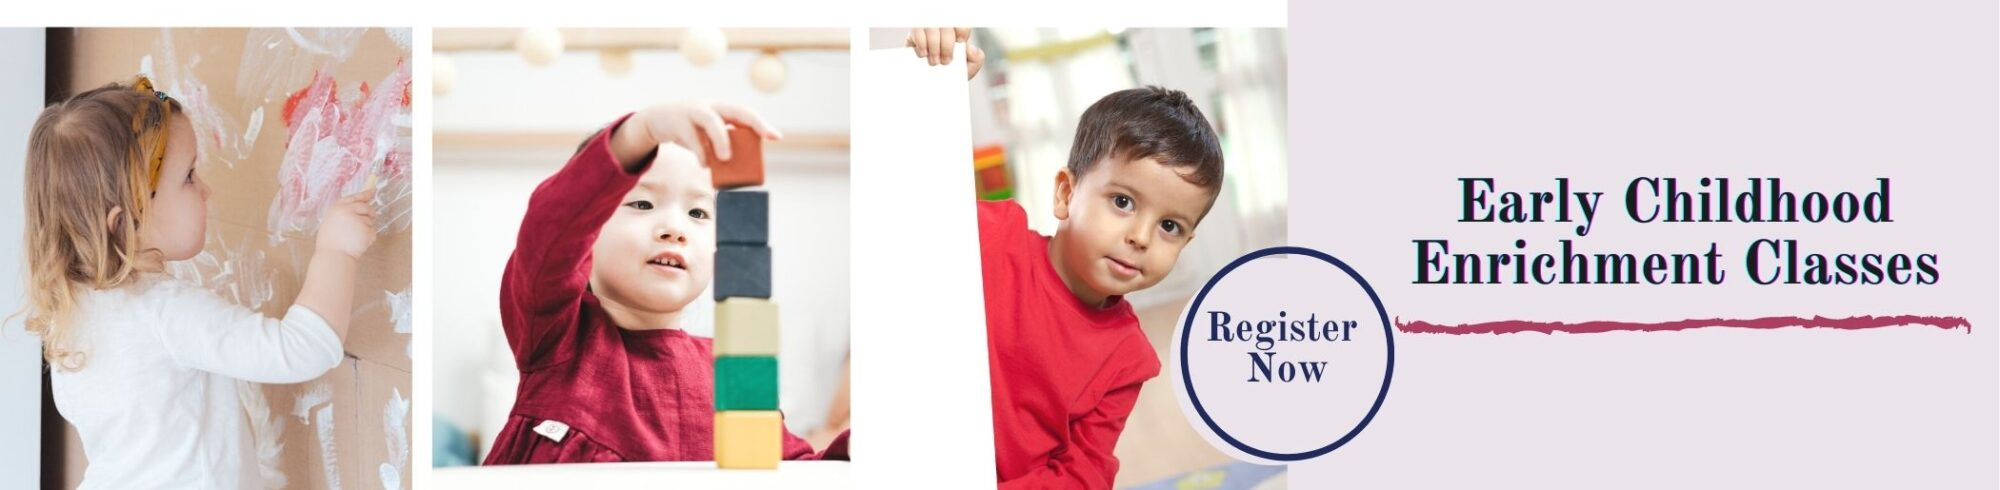 early childhood enrichment classes register now